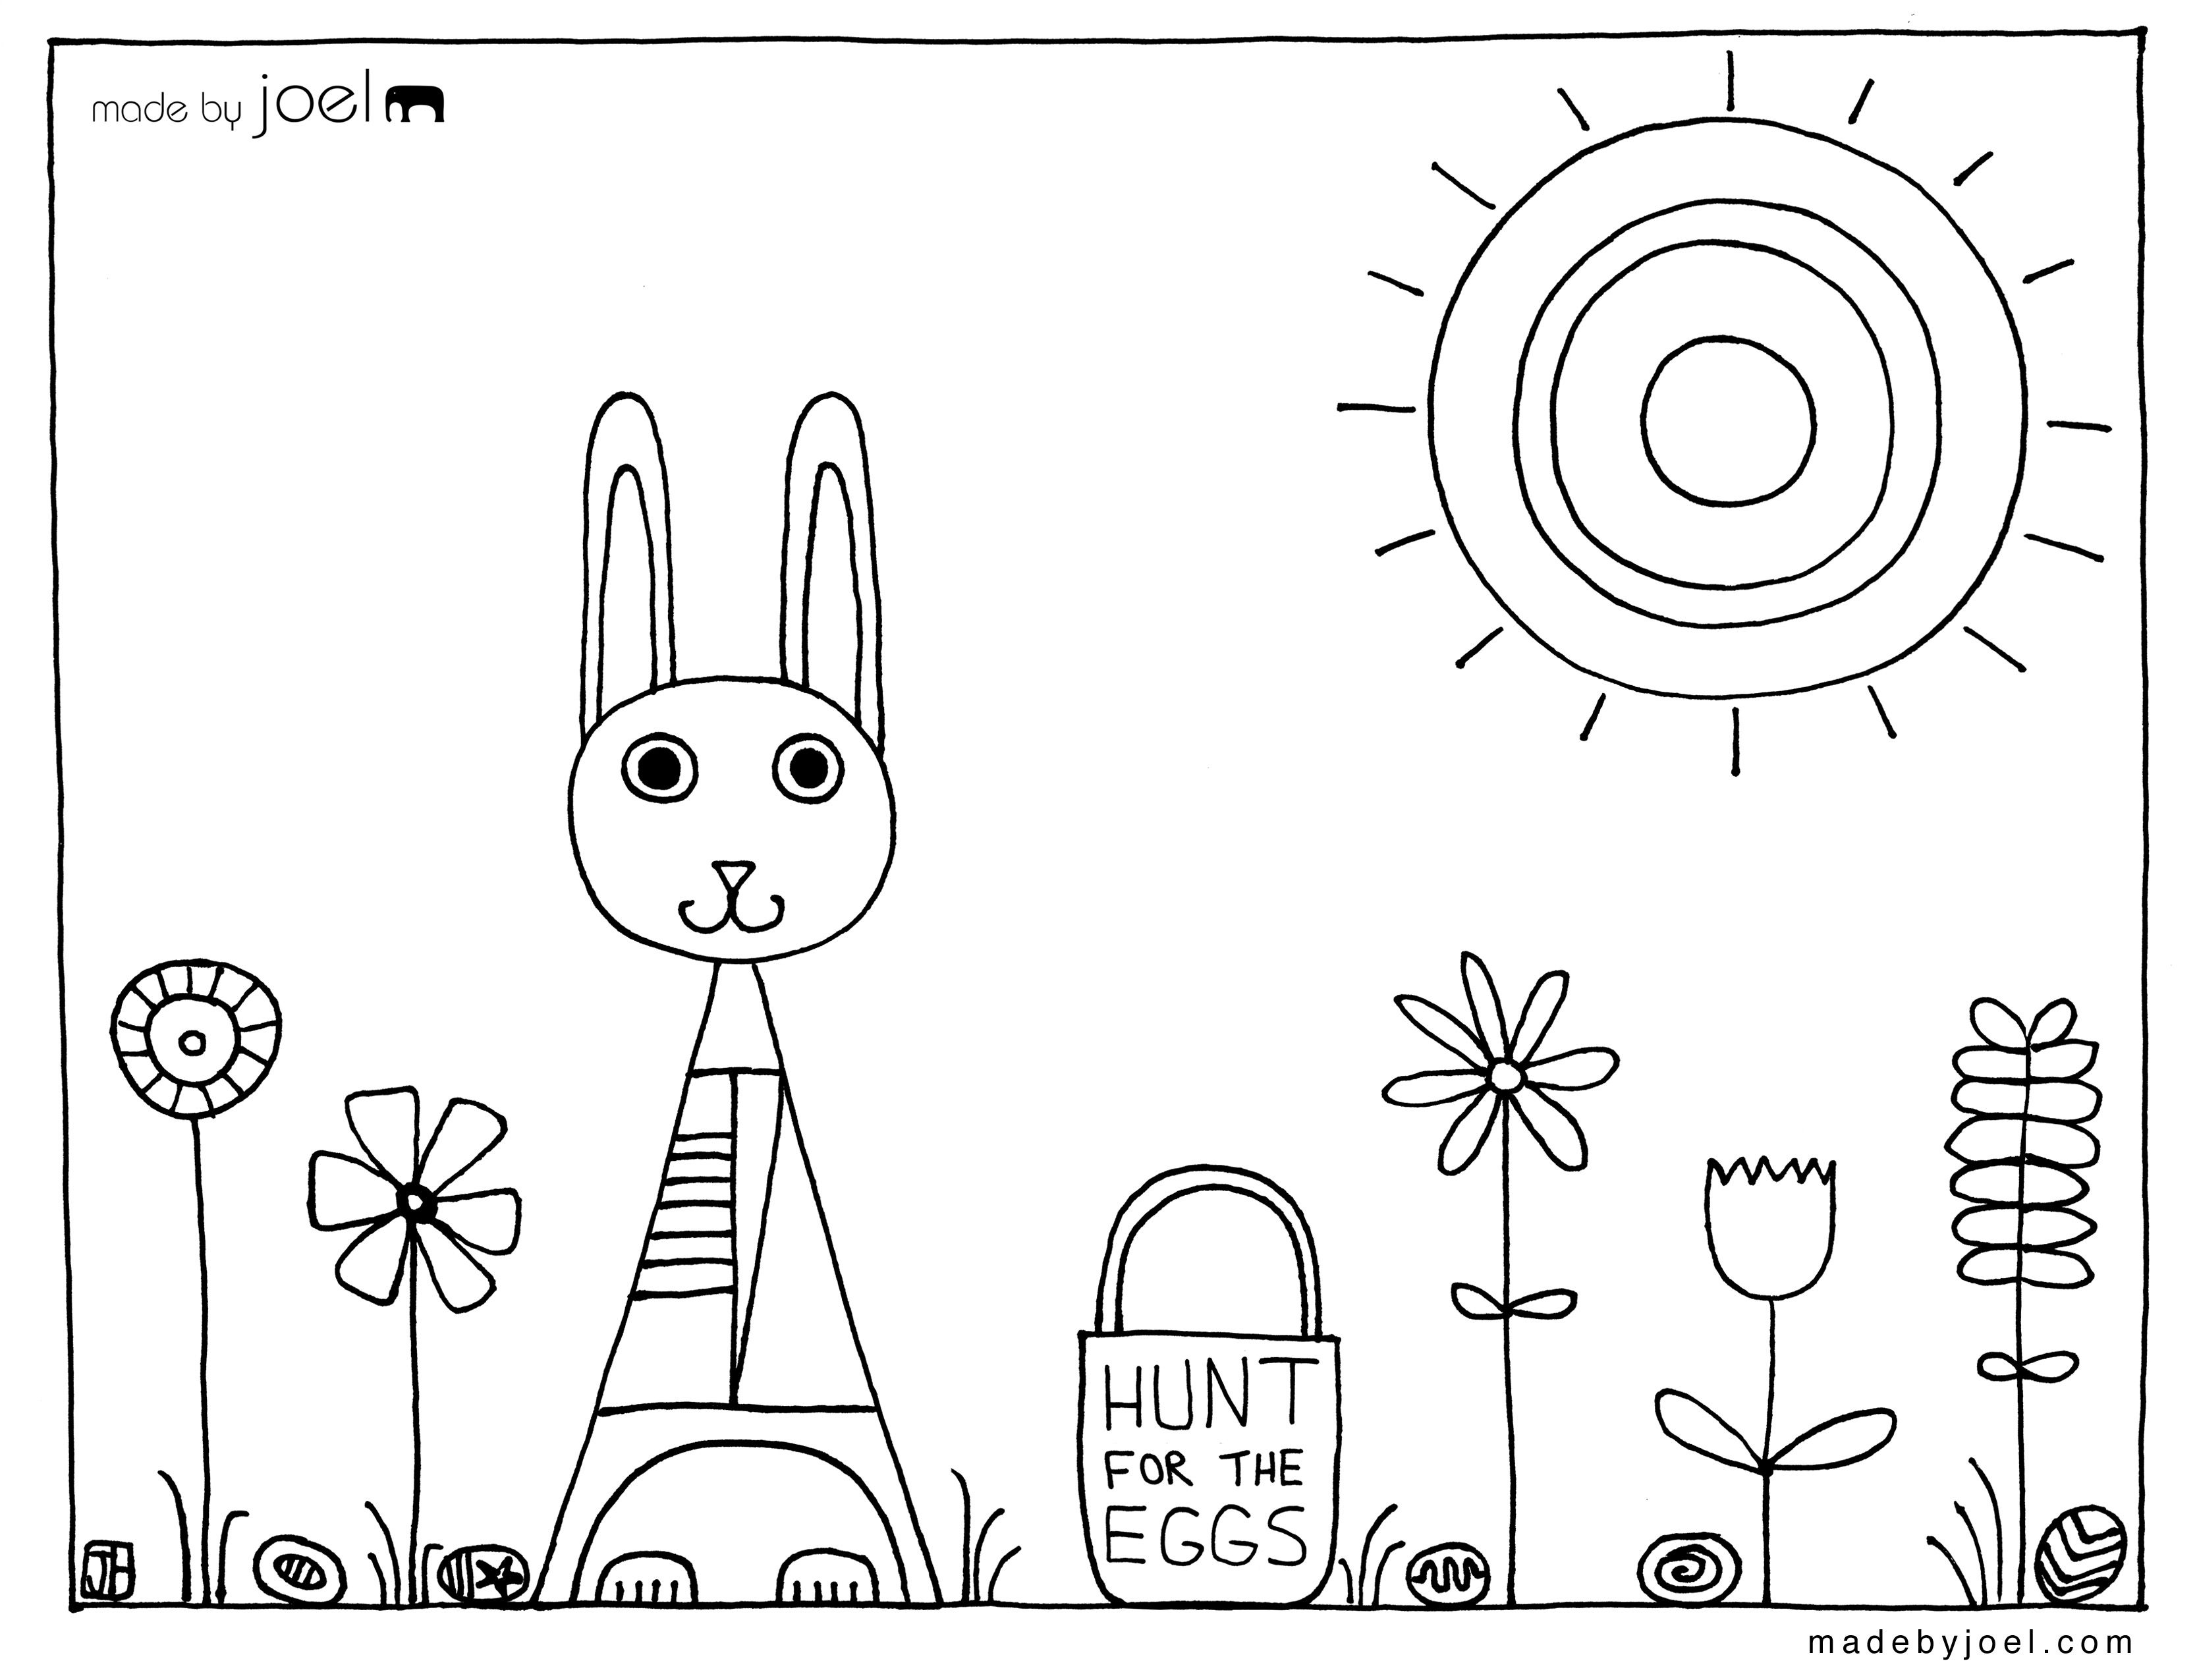 Made By Joel Easter Coloring Sheet Hunt For The Eggs Easter Coloring Sheets Easter Coloring Pages Easter Colouring